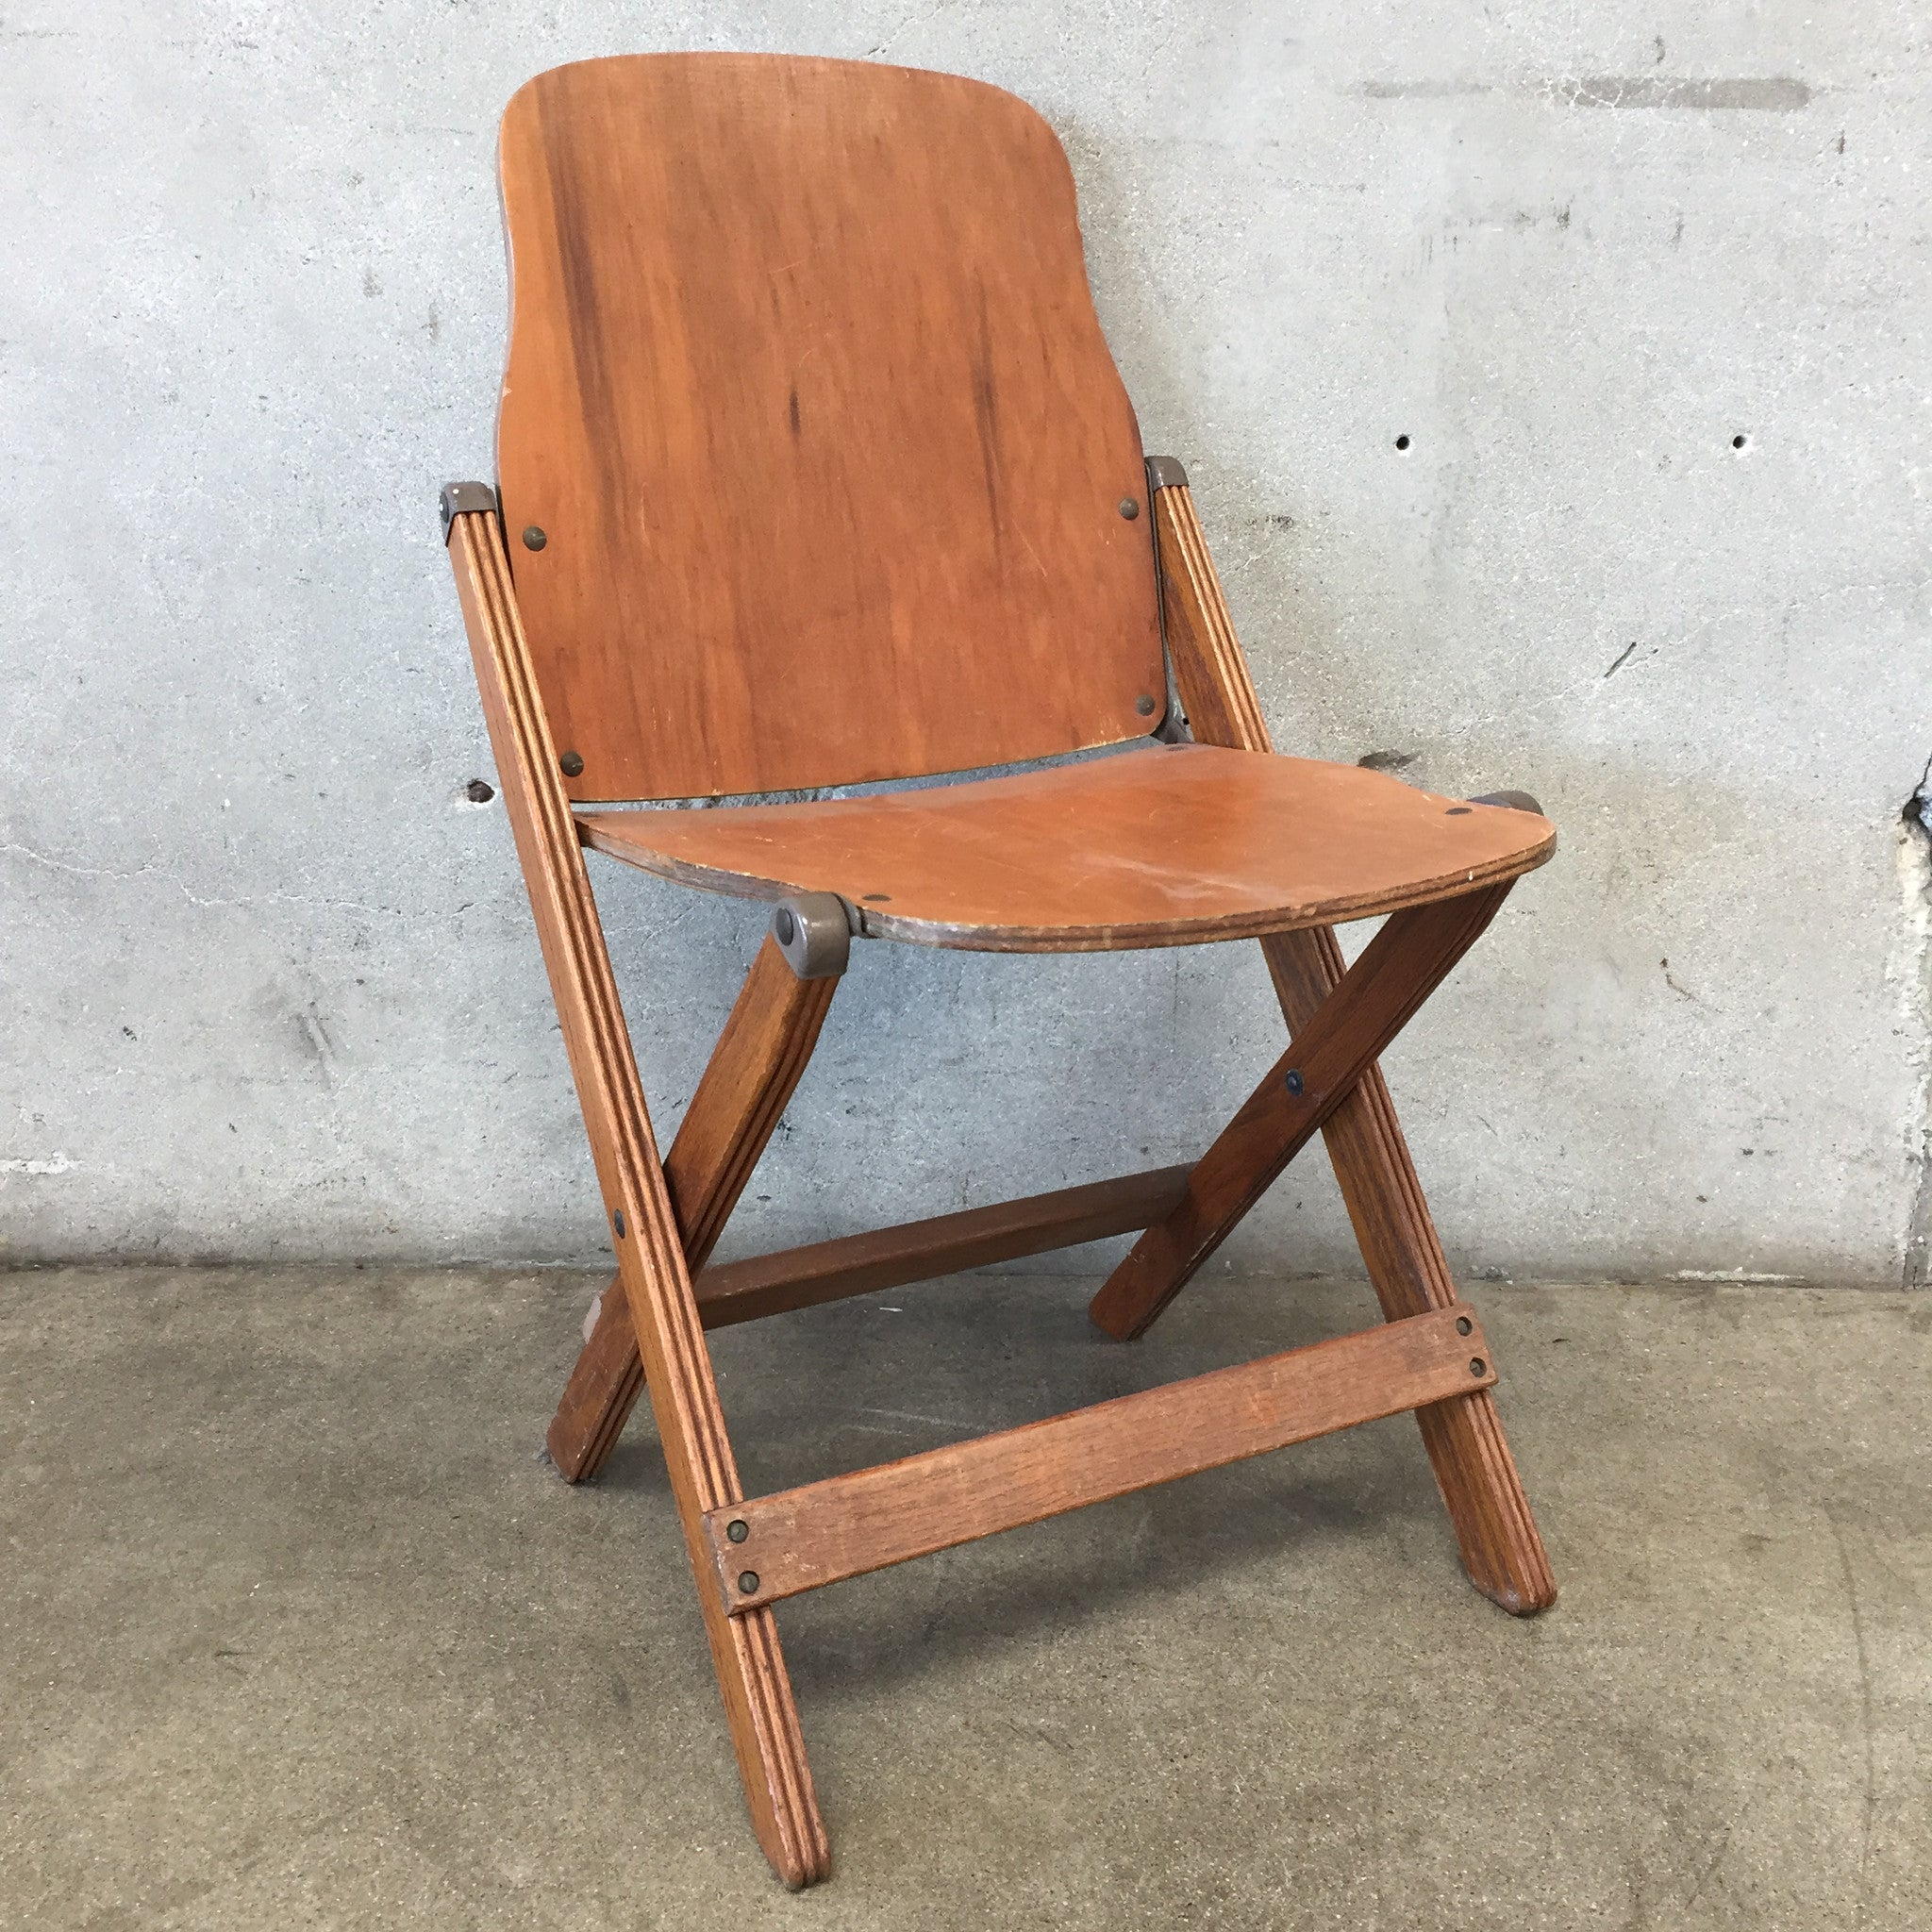 furniture concept chairs for the in wooden card inspiration table wood folding awesome vintagewoodfoldingchair sxs old girl chair garage and